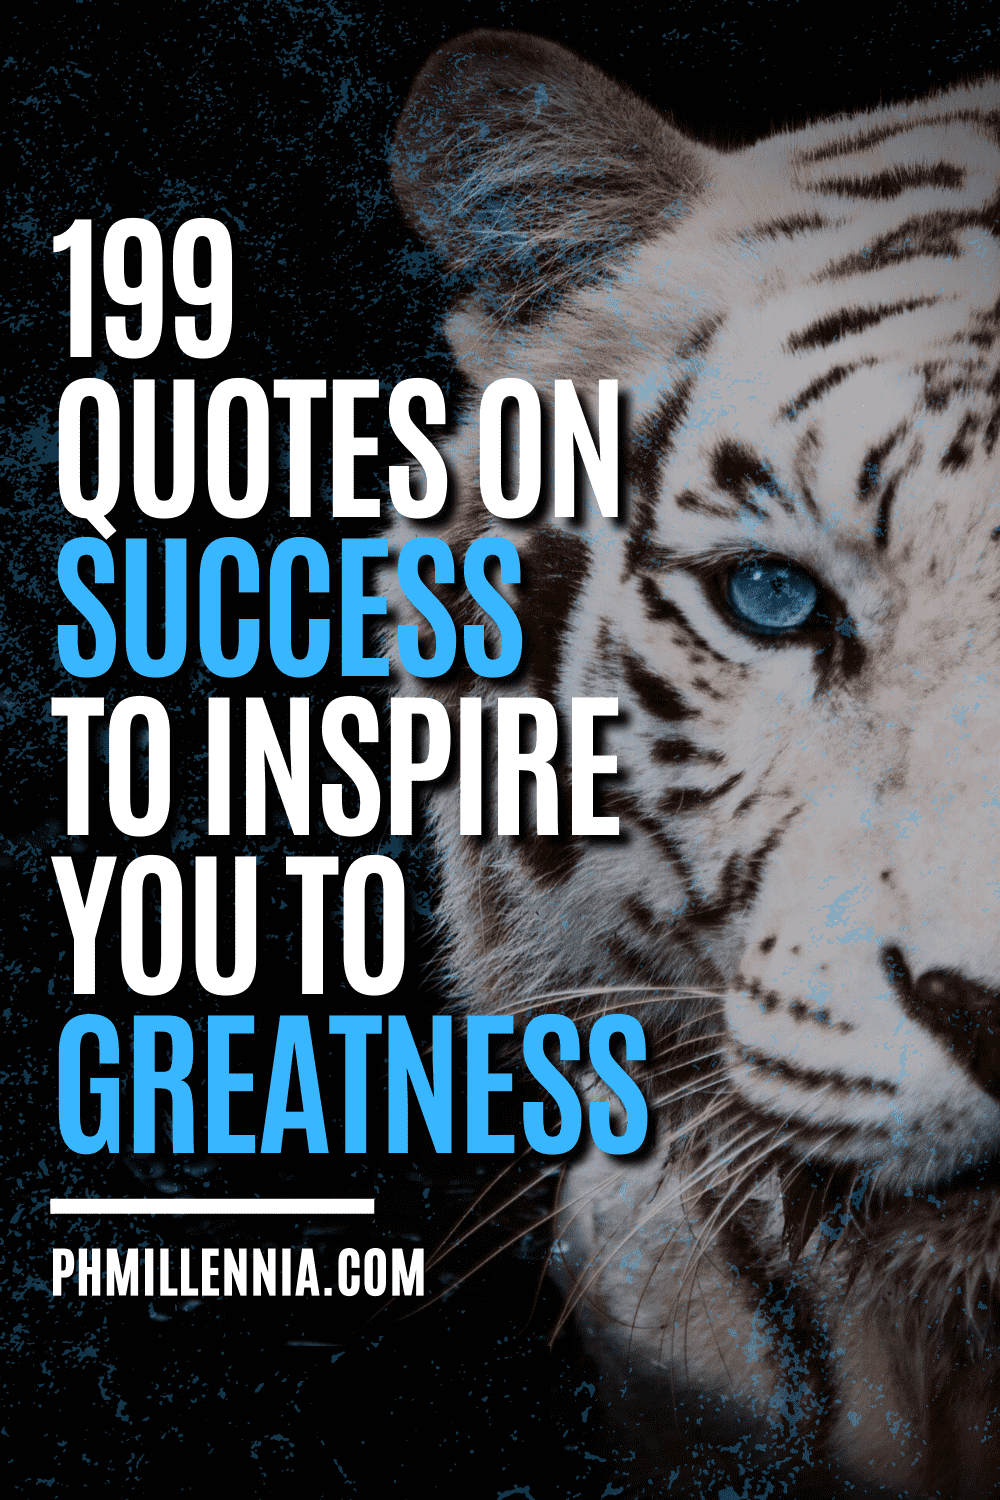 """A graphic containing text on an image of a white tiger, intended as a Pinterest Pin for the article """"199 Quotes on Success to Inspire You to Greatness"""" on phmillennia.com"""